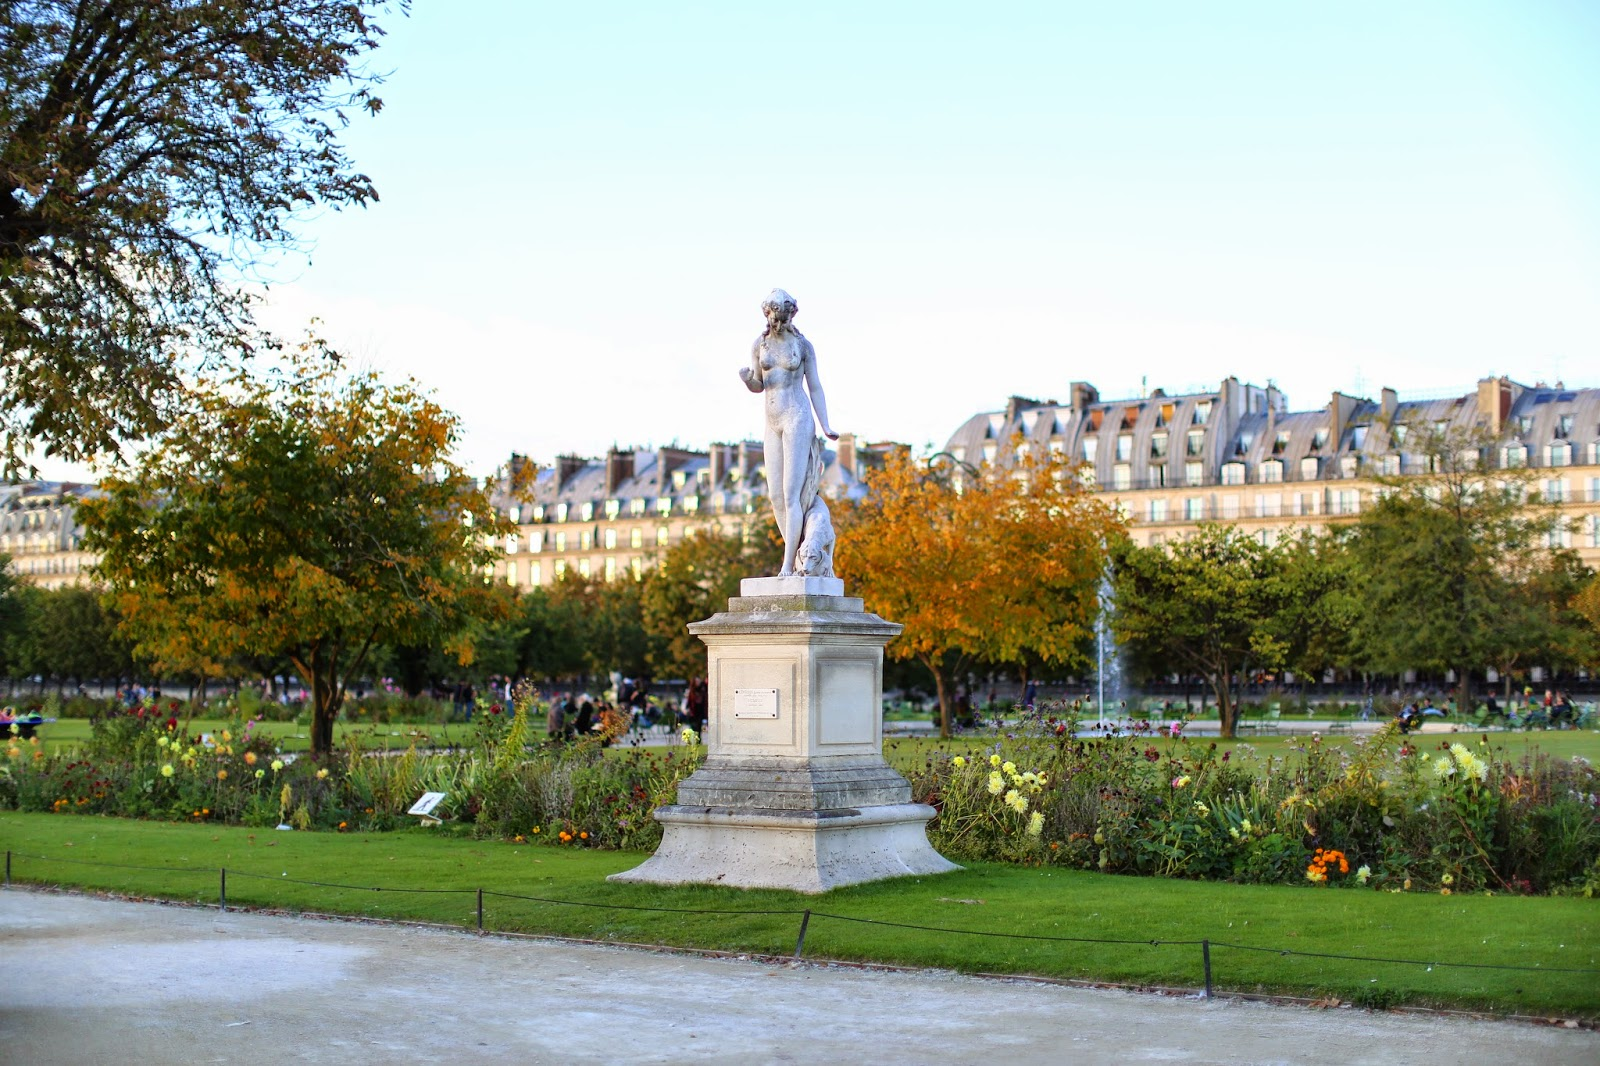 Louise paris l 39 automne au jardin des tuileries for Au jardin paris